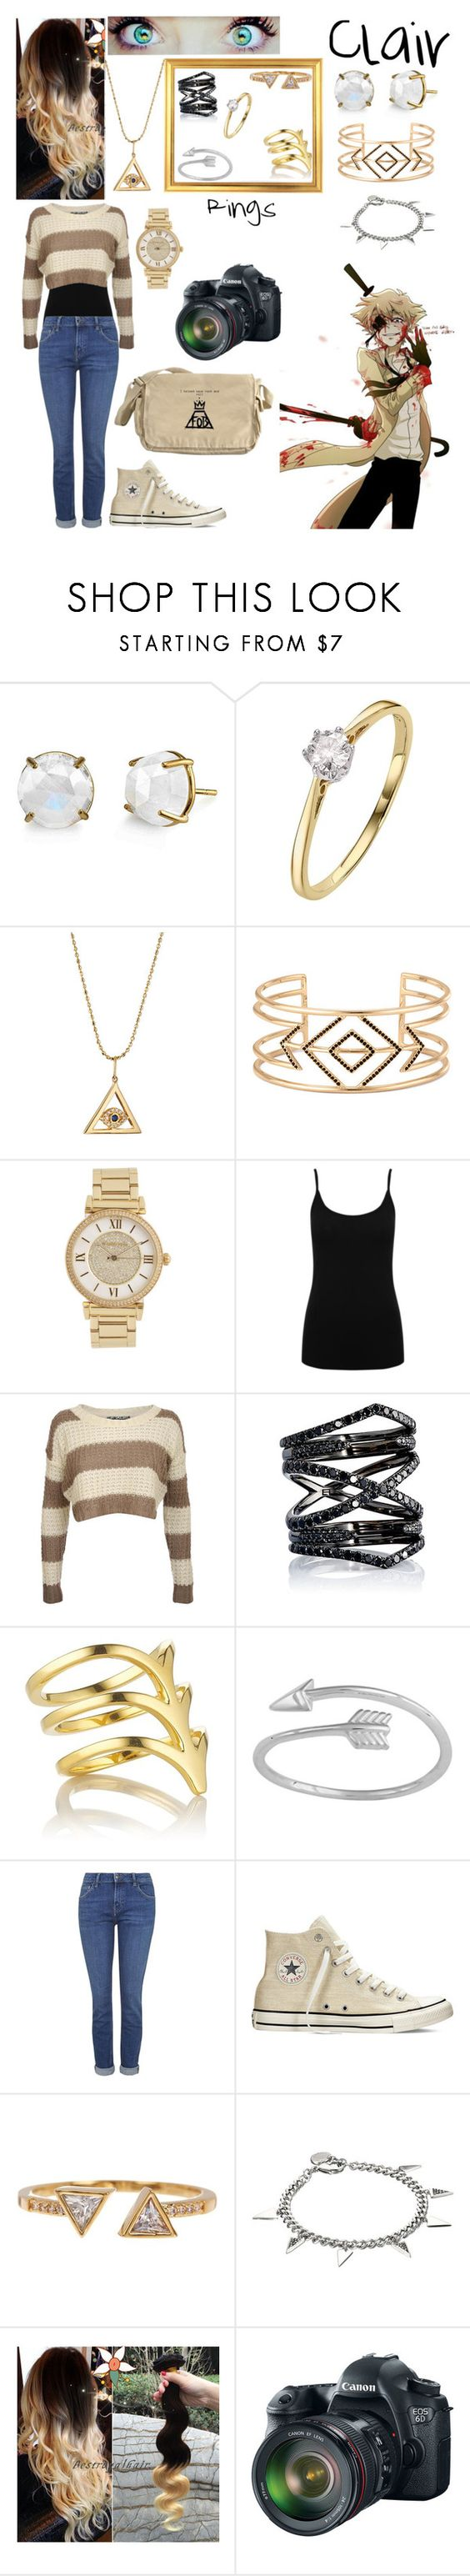 """Taking photos and (eventually) meeting Bill Cipher"" by nebulaprime ❤ liked on Polyvore featuring beauty, Irene Neuwirth, Sydney Evan, Stella & Dot, Michael Kors, M&Co, Pilot, Eva Fehren, Smith/Grey and Midsummer Star"